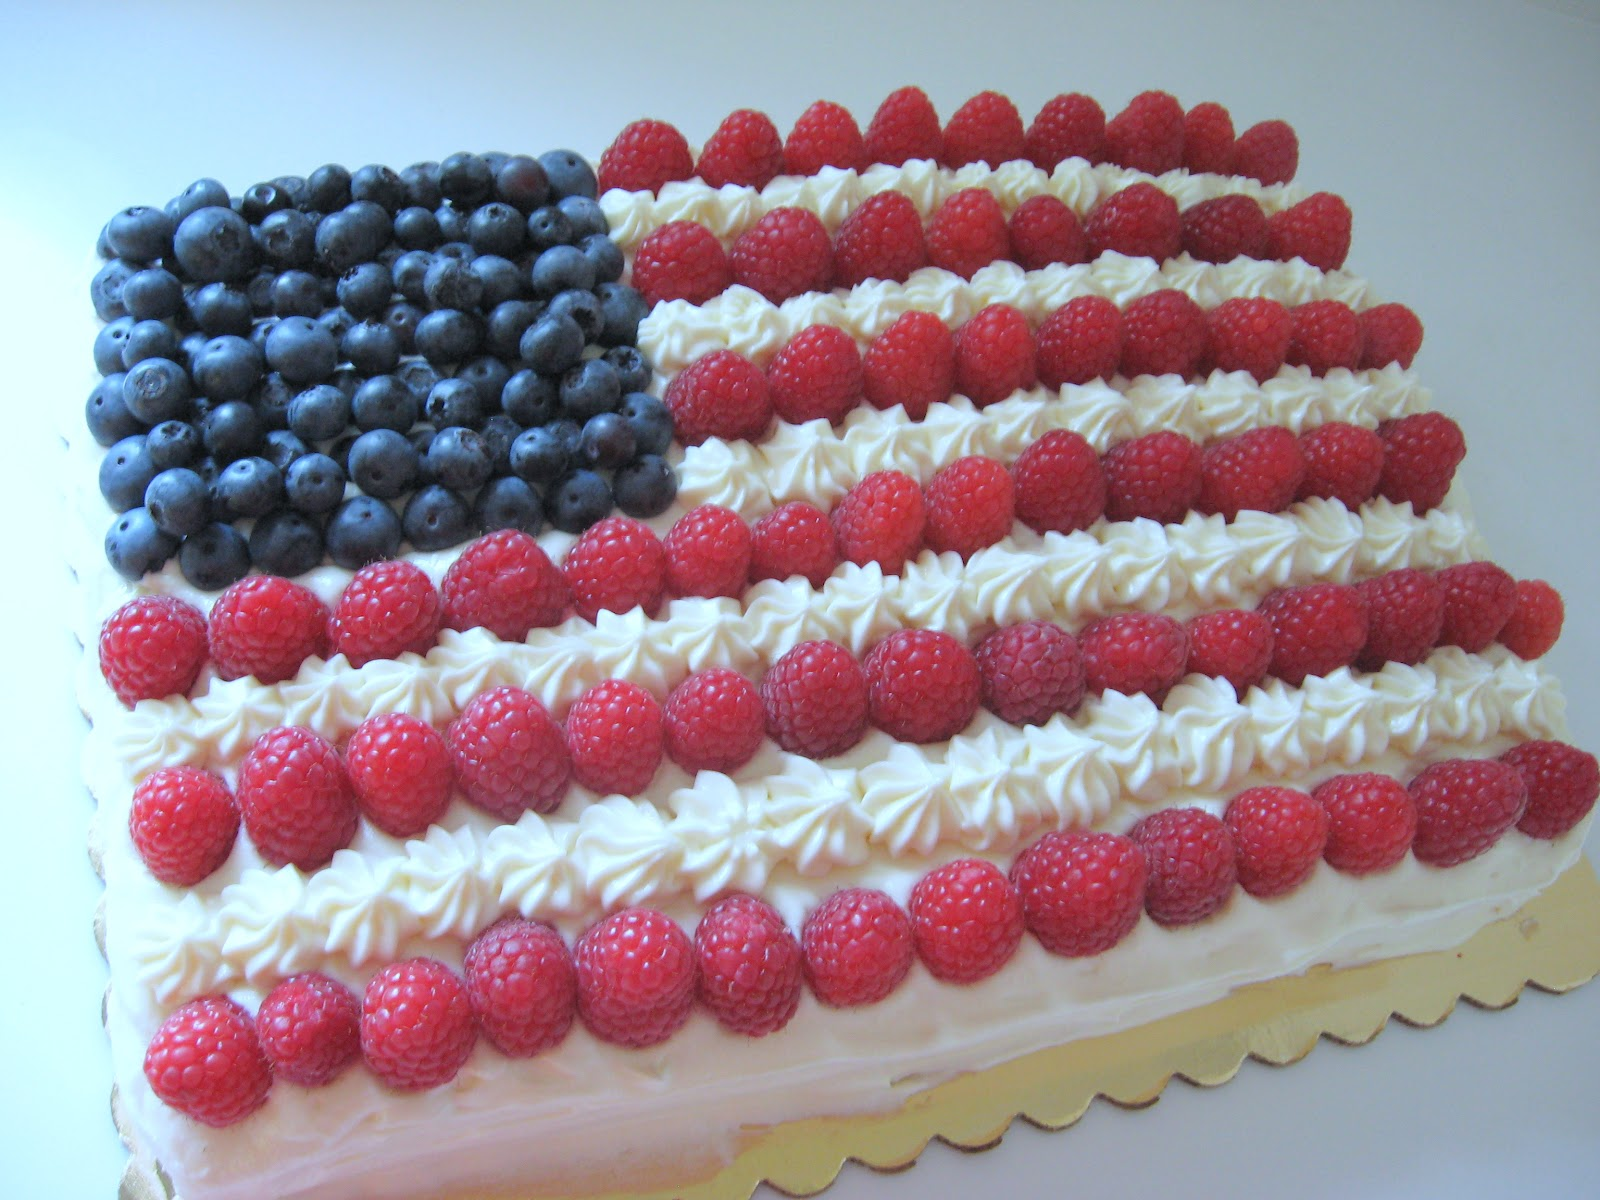 Sweetpea Samplings: Flag Cake